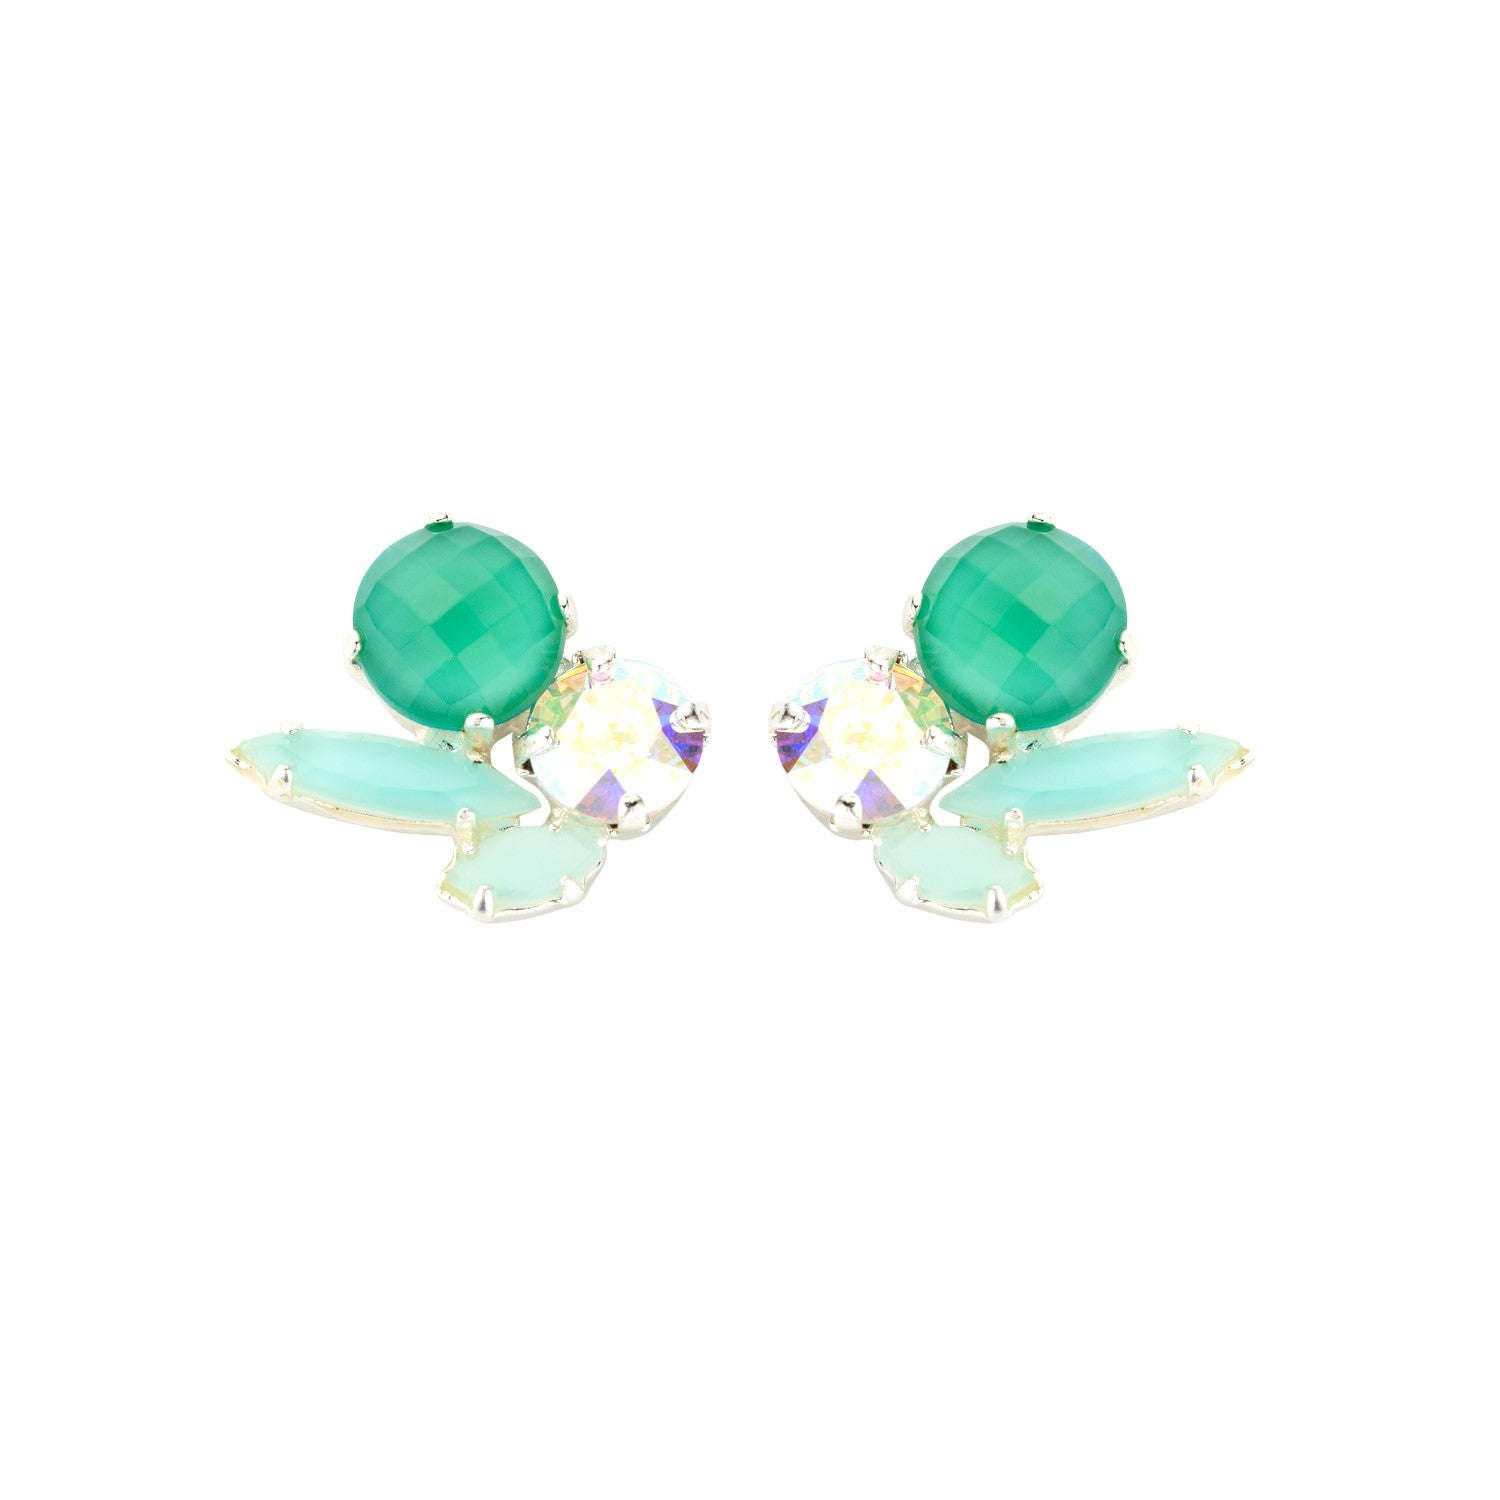 Cleo short green earrings - Souvenirs de Pomme